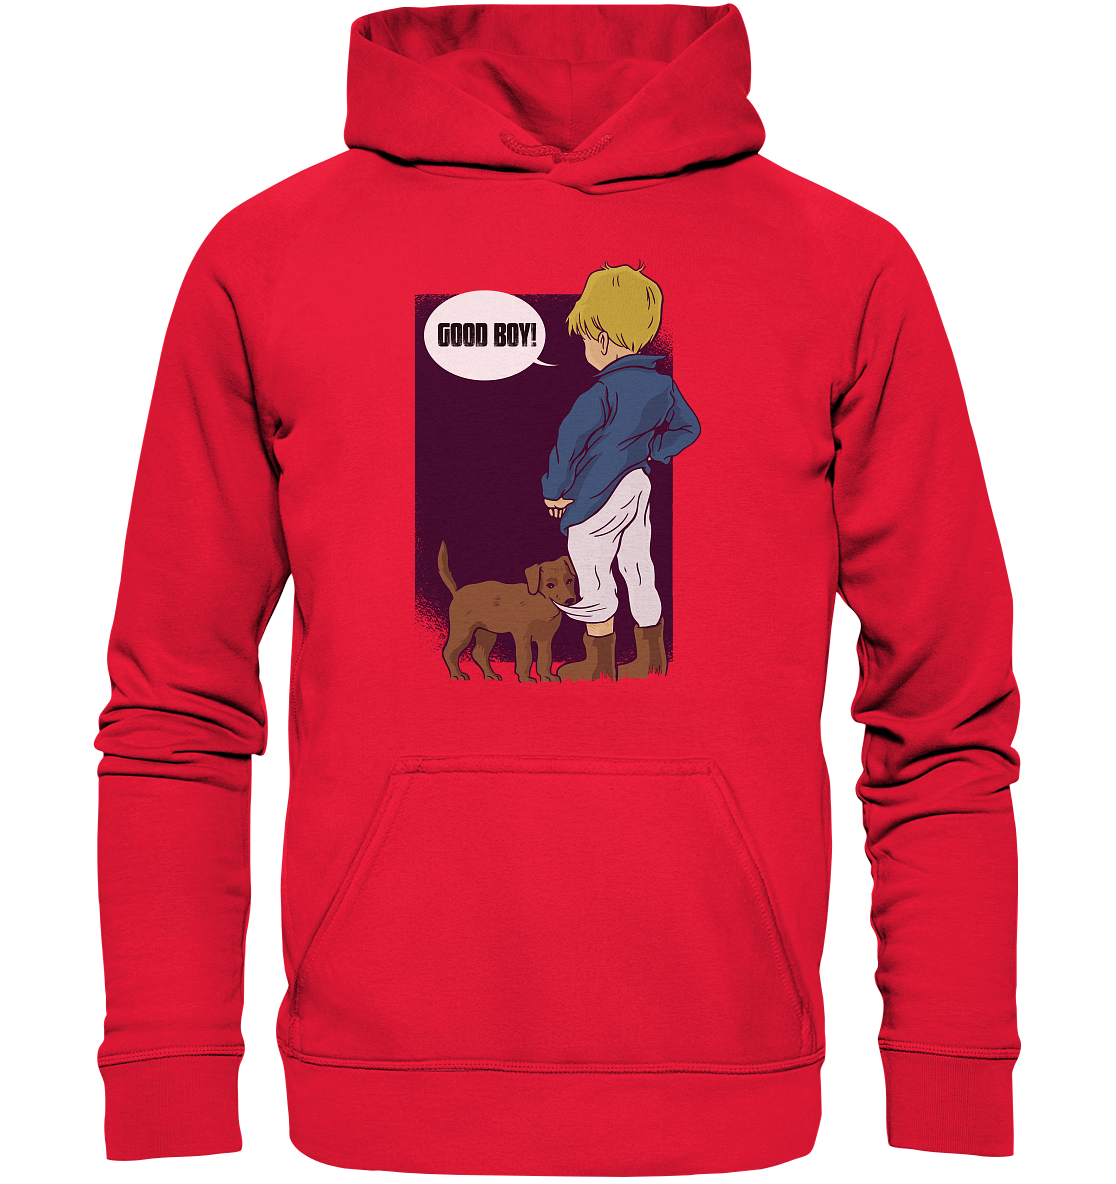 -GOOD BOY- - Kids Hooded Sweat